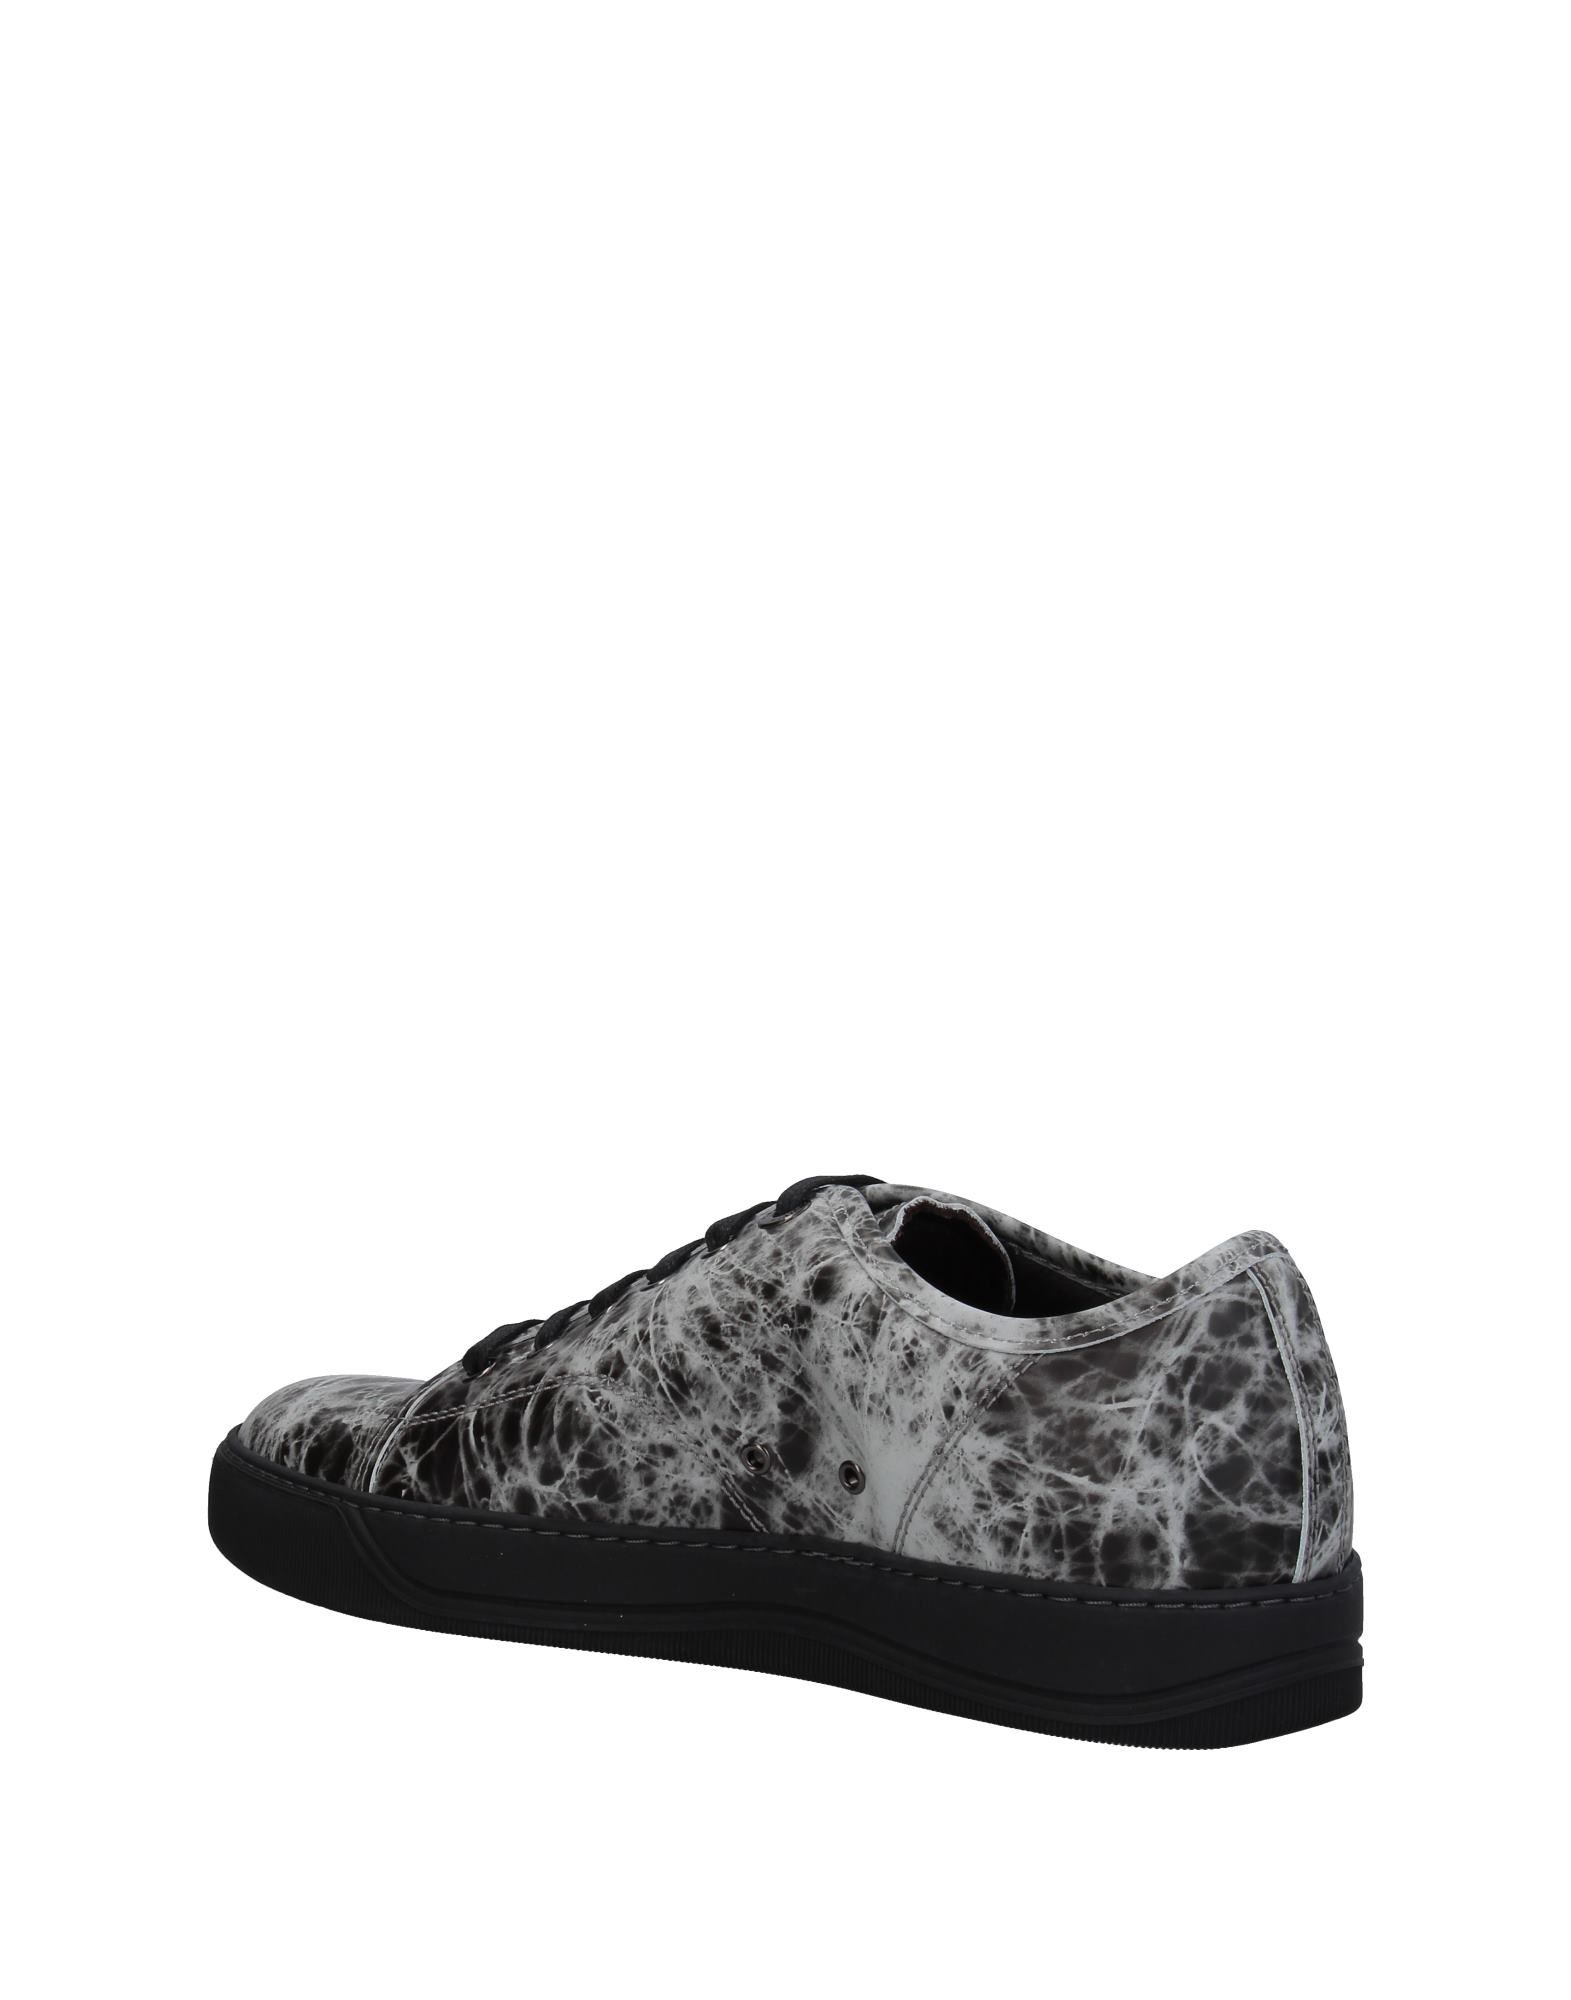 Lanvin Sneakers - Men Lanvin Sneakers online on    Australia - 11399588RB 29e492